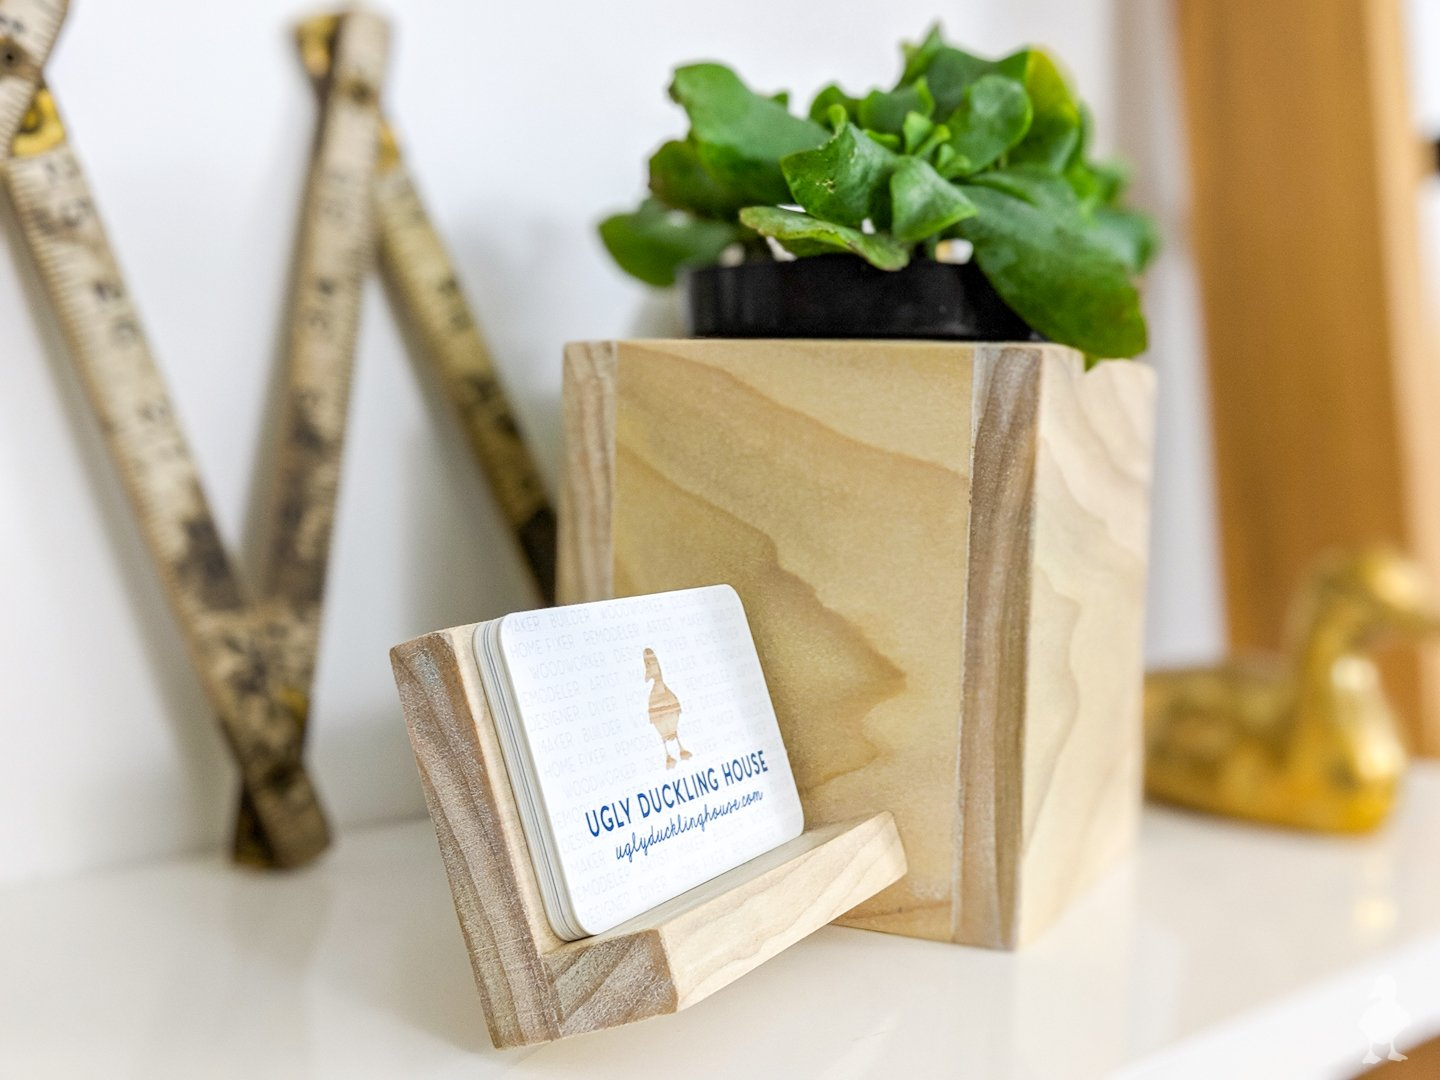 planter for desk accessory - planter with business card holder